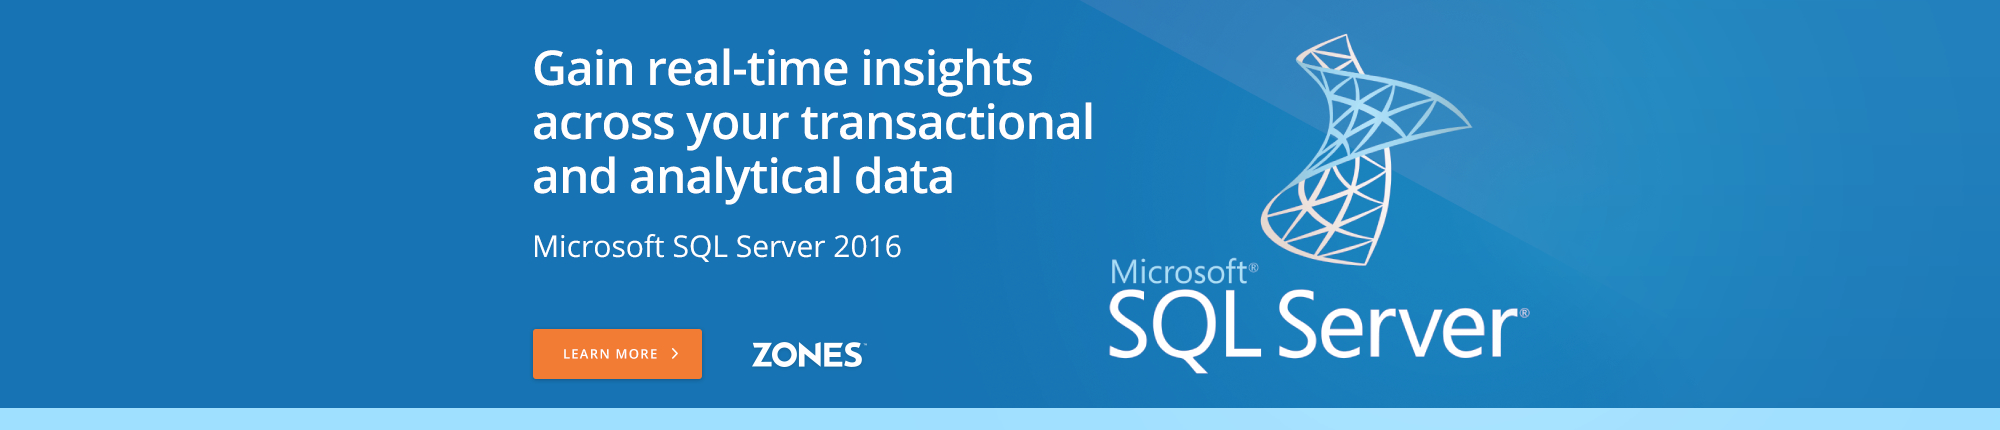 Gain real-time insights across your transactional and analytical data